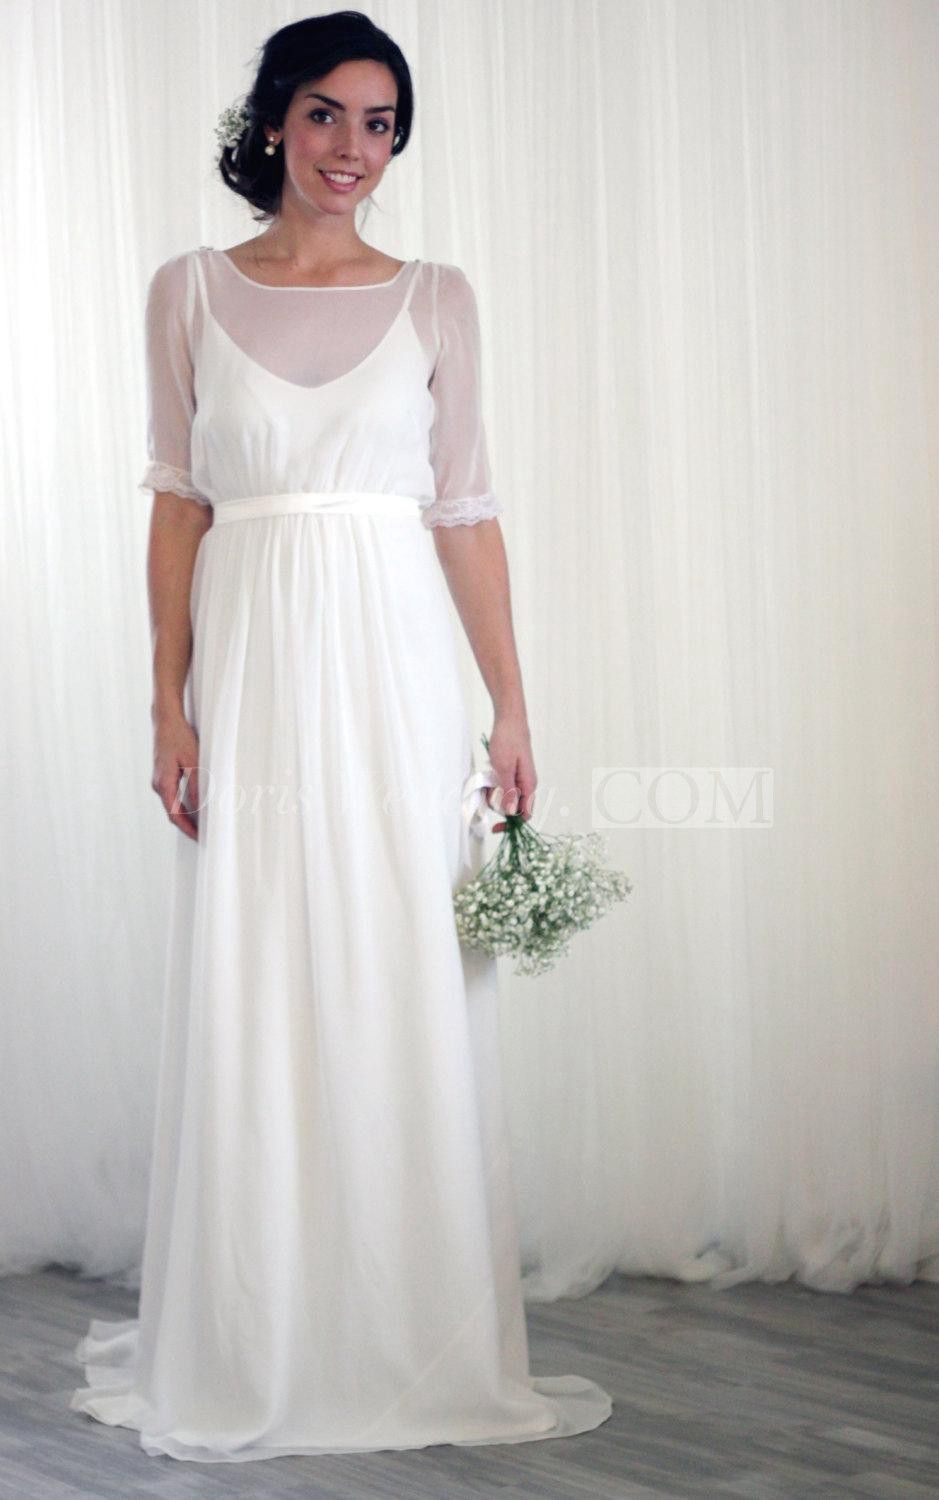 Casual wedding dress with sleeves  Half Sleeve Bateau Neck ALine Chiffon Dress With Keyhole Back